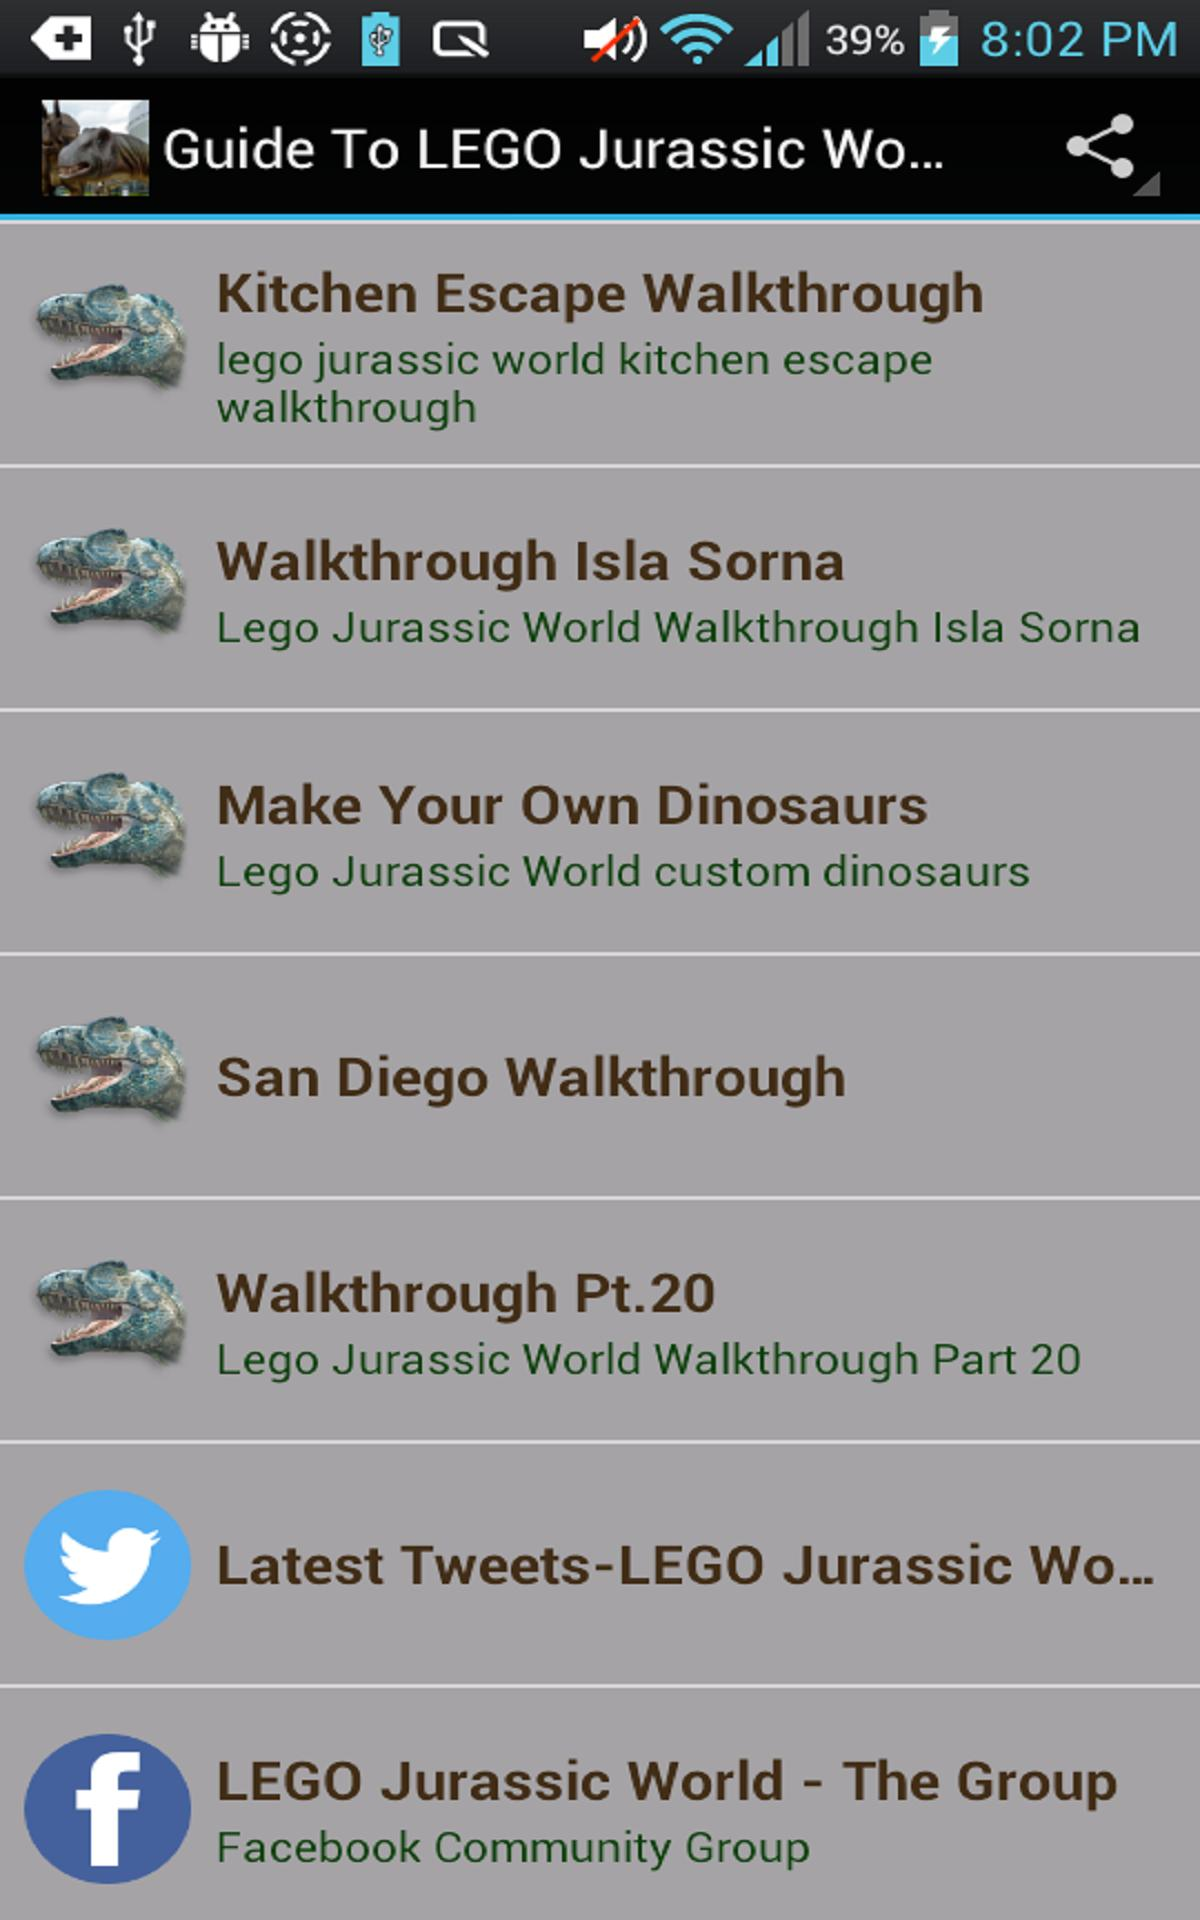 Guide To Lego Jurassic World For Android Apk Download